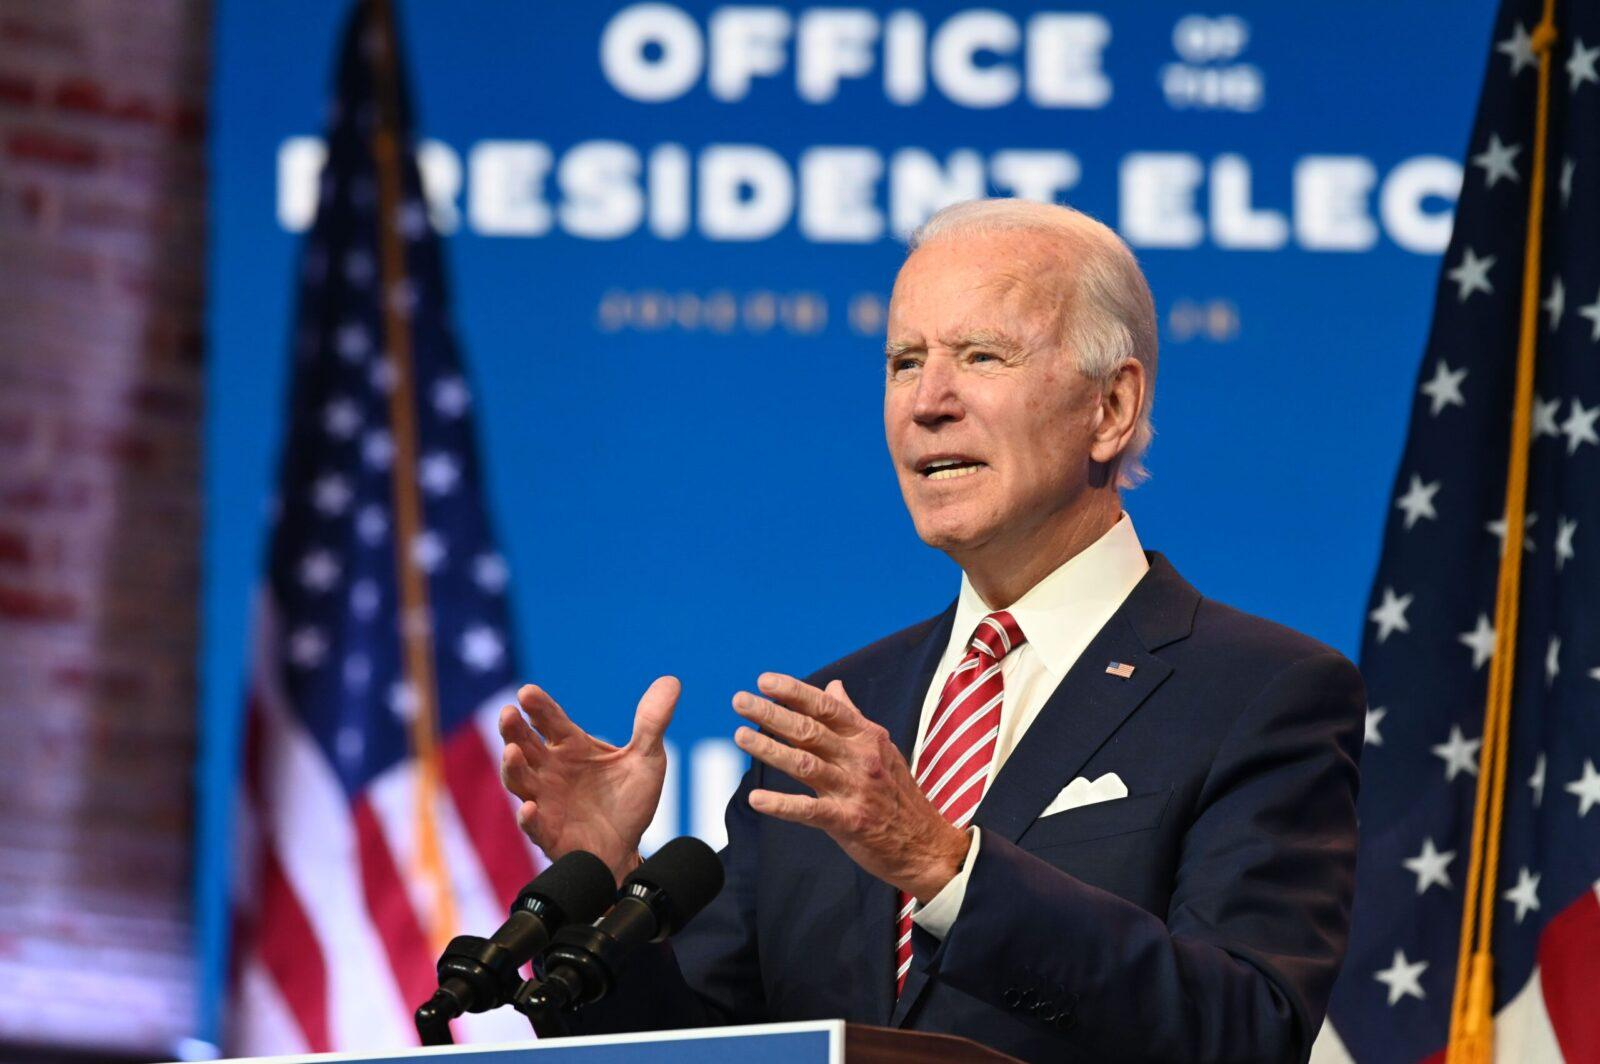 Biden will announce first Cabinet picks on Tuesday, chief of staff says